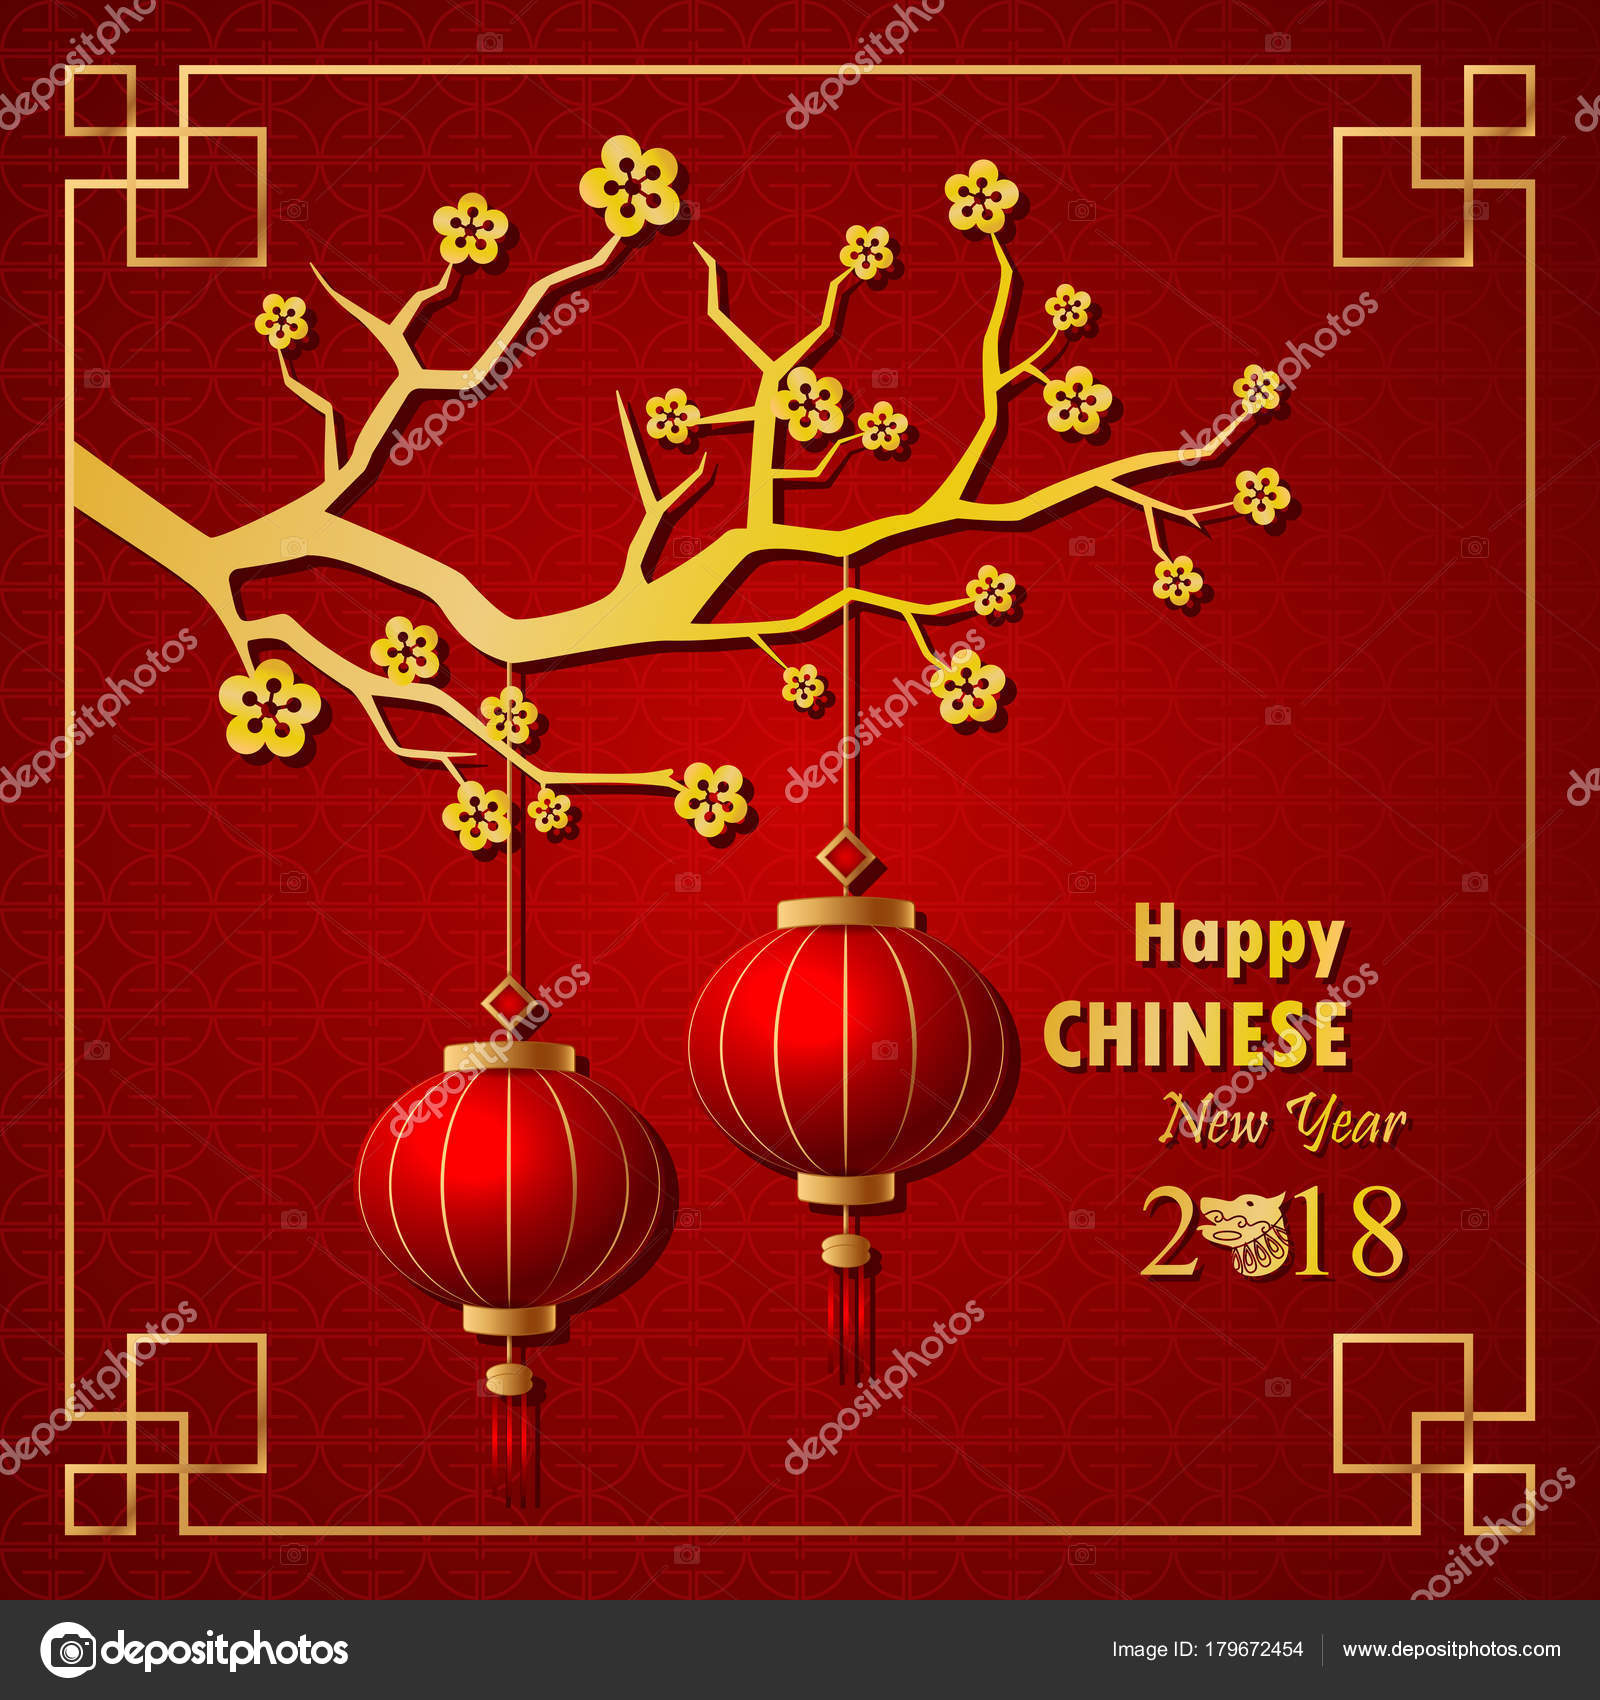 vector illustration happy chinese new year 2018 background year dog stock vector